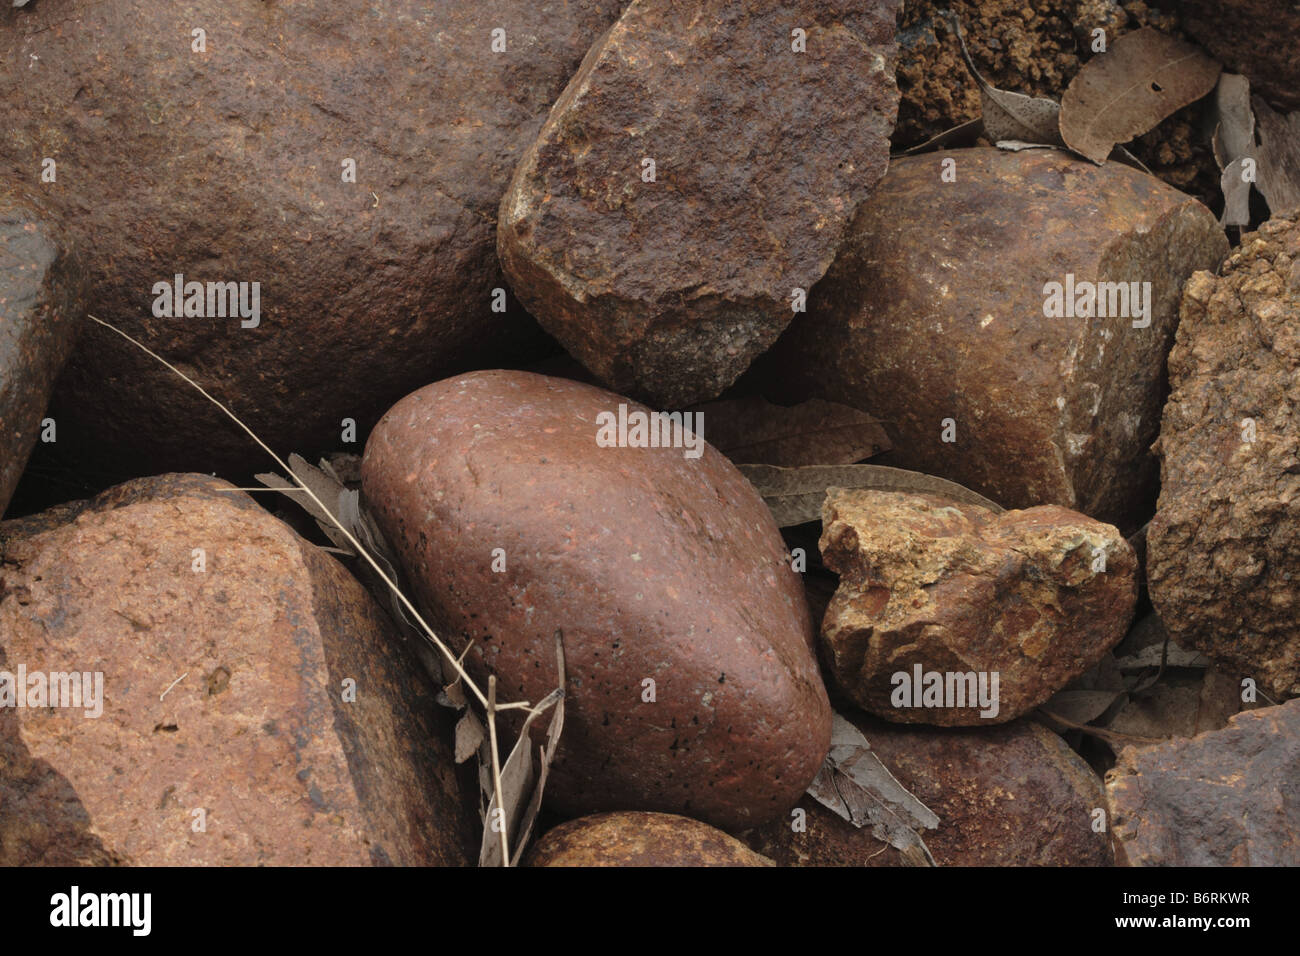 River stones with dead gum leaves - Stock Image